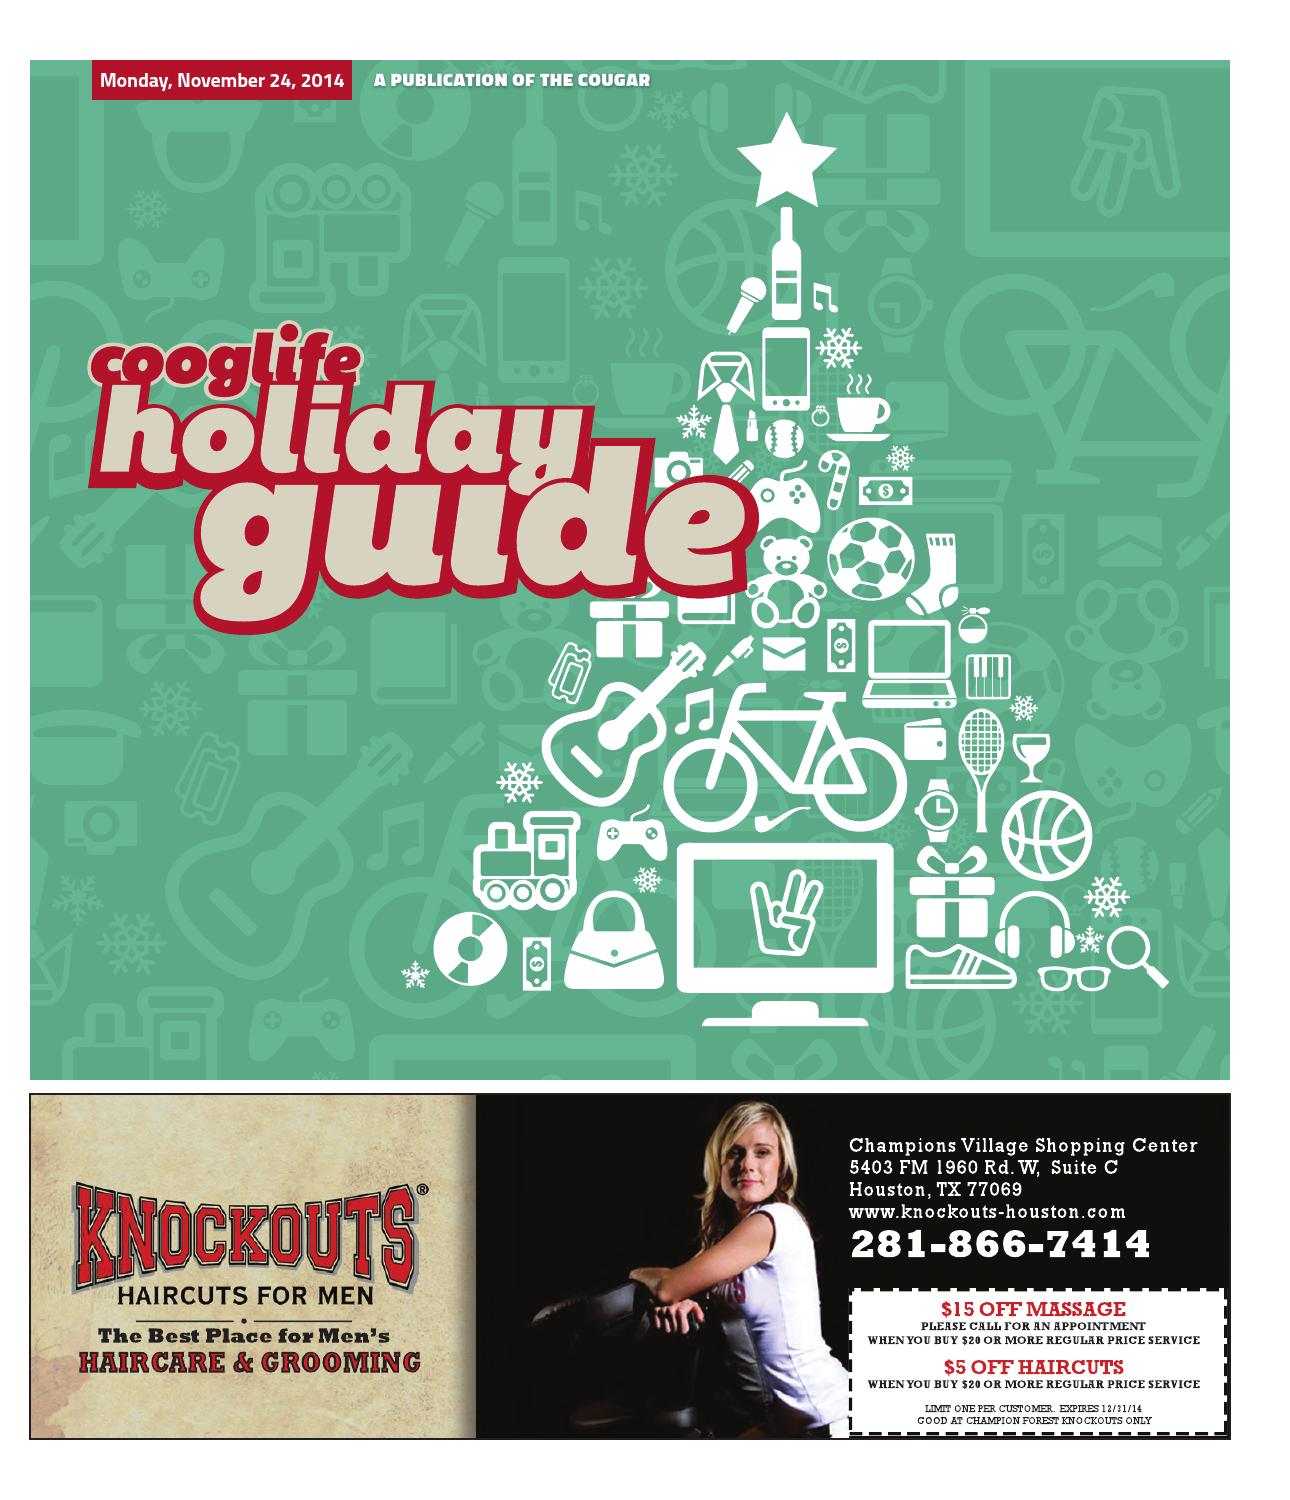 Cooglife Holiday Guide 2014 By The Daily Cougar Issuu